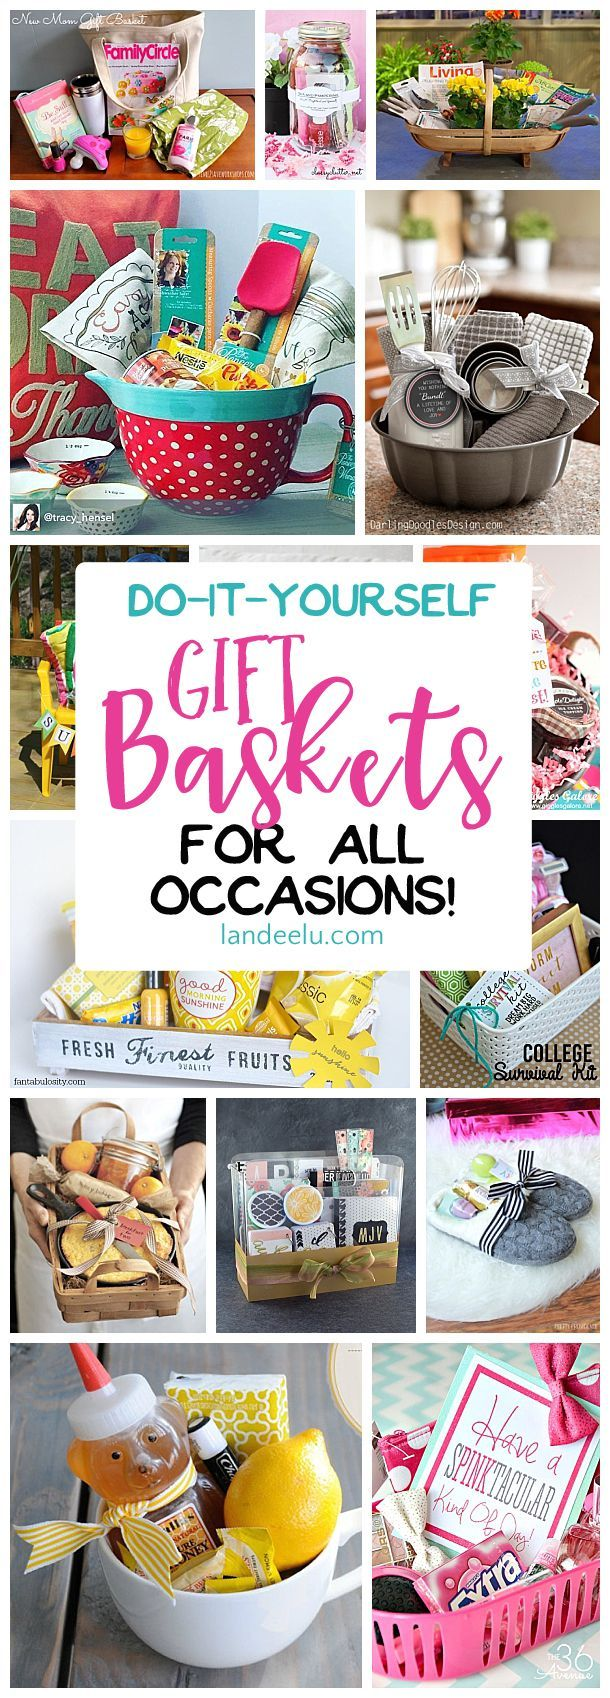 Do it yourself gift basket ideas for all occasions pinterest put together a gift basket for any occasion and make someones day easy do it yourself ideas solutioingenieria